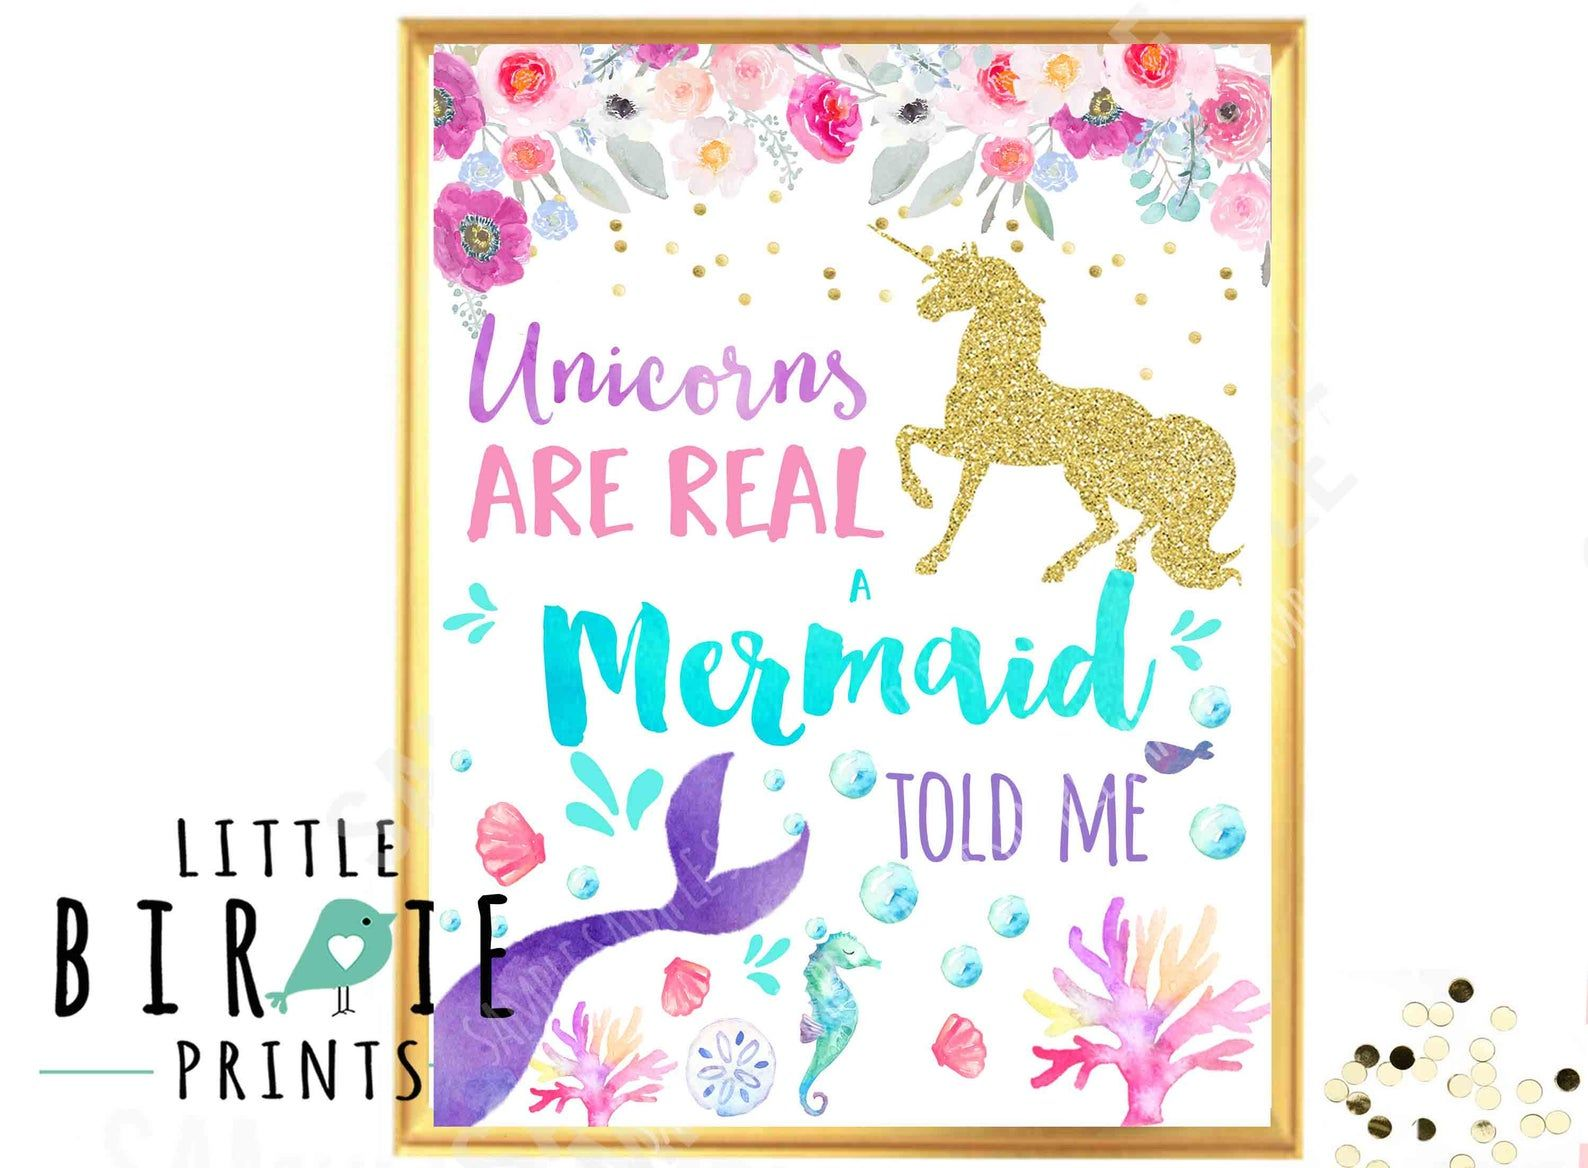 UNICORN MERMAID Party Sign Mermaid Party sign Unicorn Party sign Unicorns are real A mermaid Told me Watercolor Gold Unicorn - Party signs, Real unicorn, Mermaid sign, Unicorn party, Unicorn wall art, Mermaid party - littlebirdieprints ref hdr shop menu&search query mermaid+purple HOW TO ORDER 1  Purchase via Paypal 2  Item will come instant download to your email 4  Print on 8x10 and frame! Easy FREQUENTLY ASKED QUESTIONS 1  What is your turn around time  My turn around time is 48 hours from when you provide all the information for your invitation  Larger orders (with the matching party printables) are 72 hours  If I have a large volume of orders in a day this is subject to change  My shop is closed Sundays  If you'd like a rush order (under 24 hours) there is a listing for that in my shop called  Rush order add on  just add the invitation and Rush order items both in your cart and it will bump your item to the top of my list  2  How do I print, I don't get it  So you take the digital design of your invitation on a flash disk, or email it, or upload it to your printing services  If you want photopaper you print at a photo place just like you would any photograph  If you want cardstock then print at a  copy shop  like Kinkos, Office Max, Staples etc   Invitations print on 5x7 or 4x6 size, all other printables print on 8 5 by 11 cardstock  A copy shop works better if your getting other party items (banner, favor tags etc) 3  Do you offer printing services   To insure you receive your items in a timely manner since I am in South Africa, I only offer printable items  It just takes too long to ship to most of the world from here! 4  Do you offer discounted packages for your party printables  I offer alacarte items as well as party packages  Packages are  ESSENTIAL PACKAGE Regular price for a la carte items is $50, package deal is $36  Personalized and Printable Invitation  Happy Birthday Name Banner Cupcake Toppers  Favor tags  PREMIUM PACKAGE Regular price for a la carte is $80, discount price $49 for package Personalized and Printable Invitation Water Bottle Labels Favor tags Cupcake Toppers Door Sign Happy Birthday Name Banner Non personalized Buffet Cards Party Hats Fold over thank you's 4x6 size  (I can make more items such as menus and high chair banners etc, just inquire) 5  Can I change the colors  It's a lot of design time to change colors, ask me via email if I can accommodate your needs, a fee will apply  artwork by Art by papersphinx etsy com